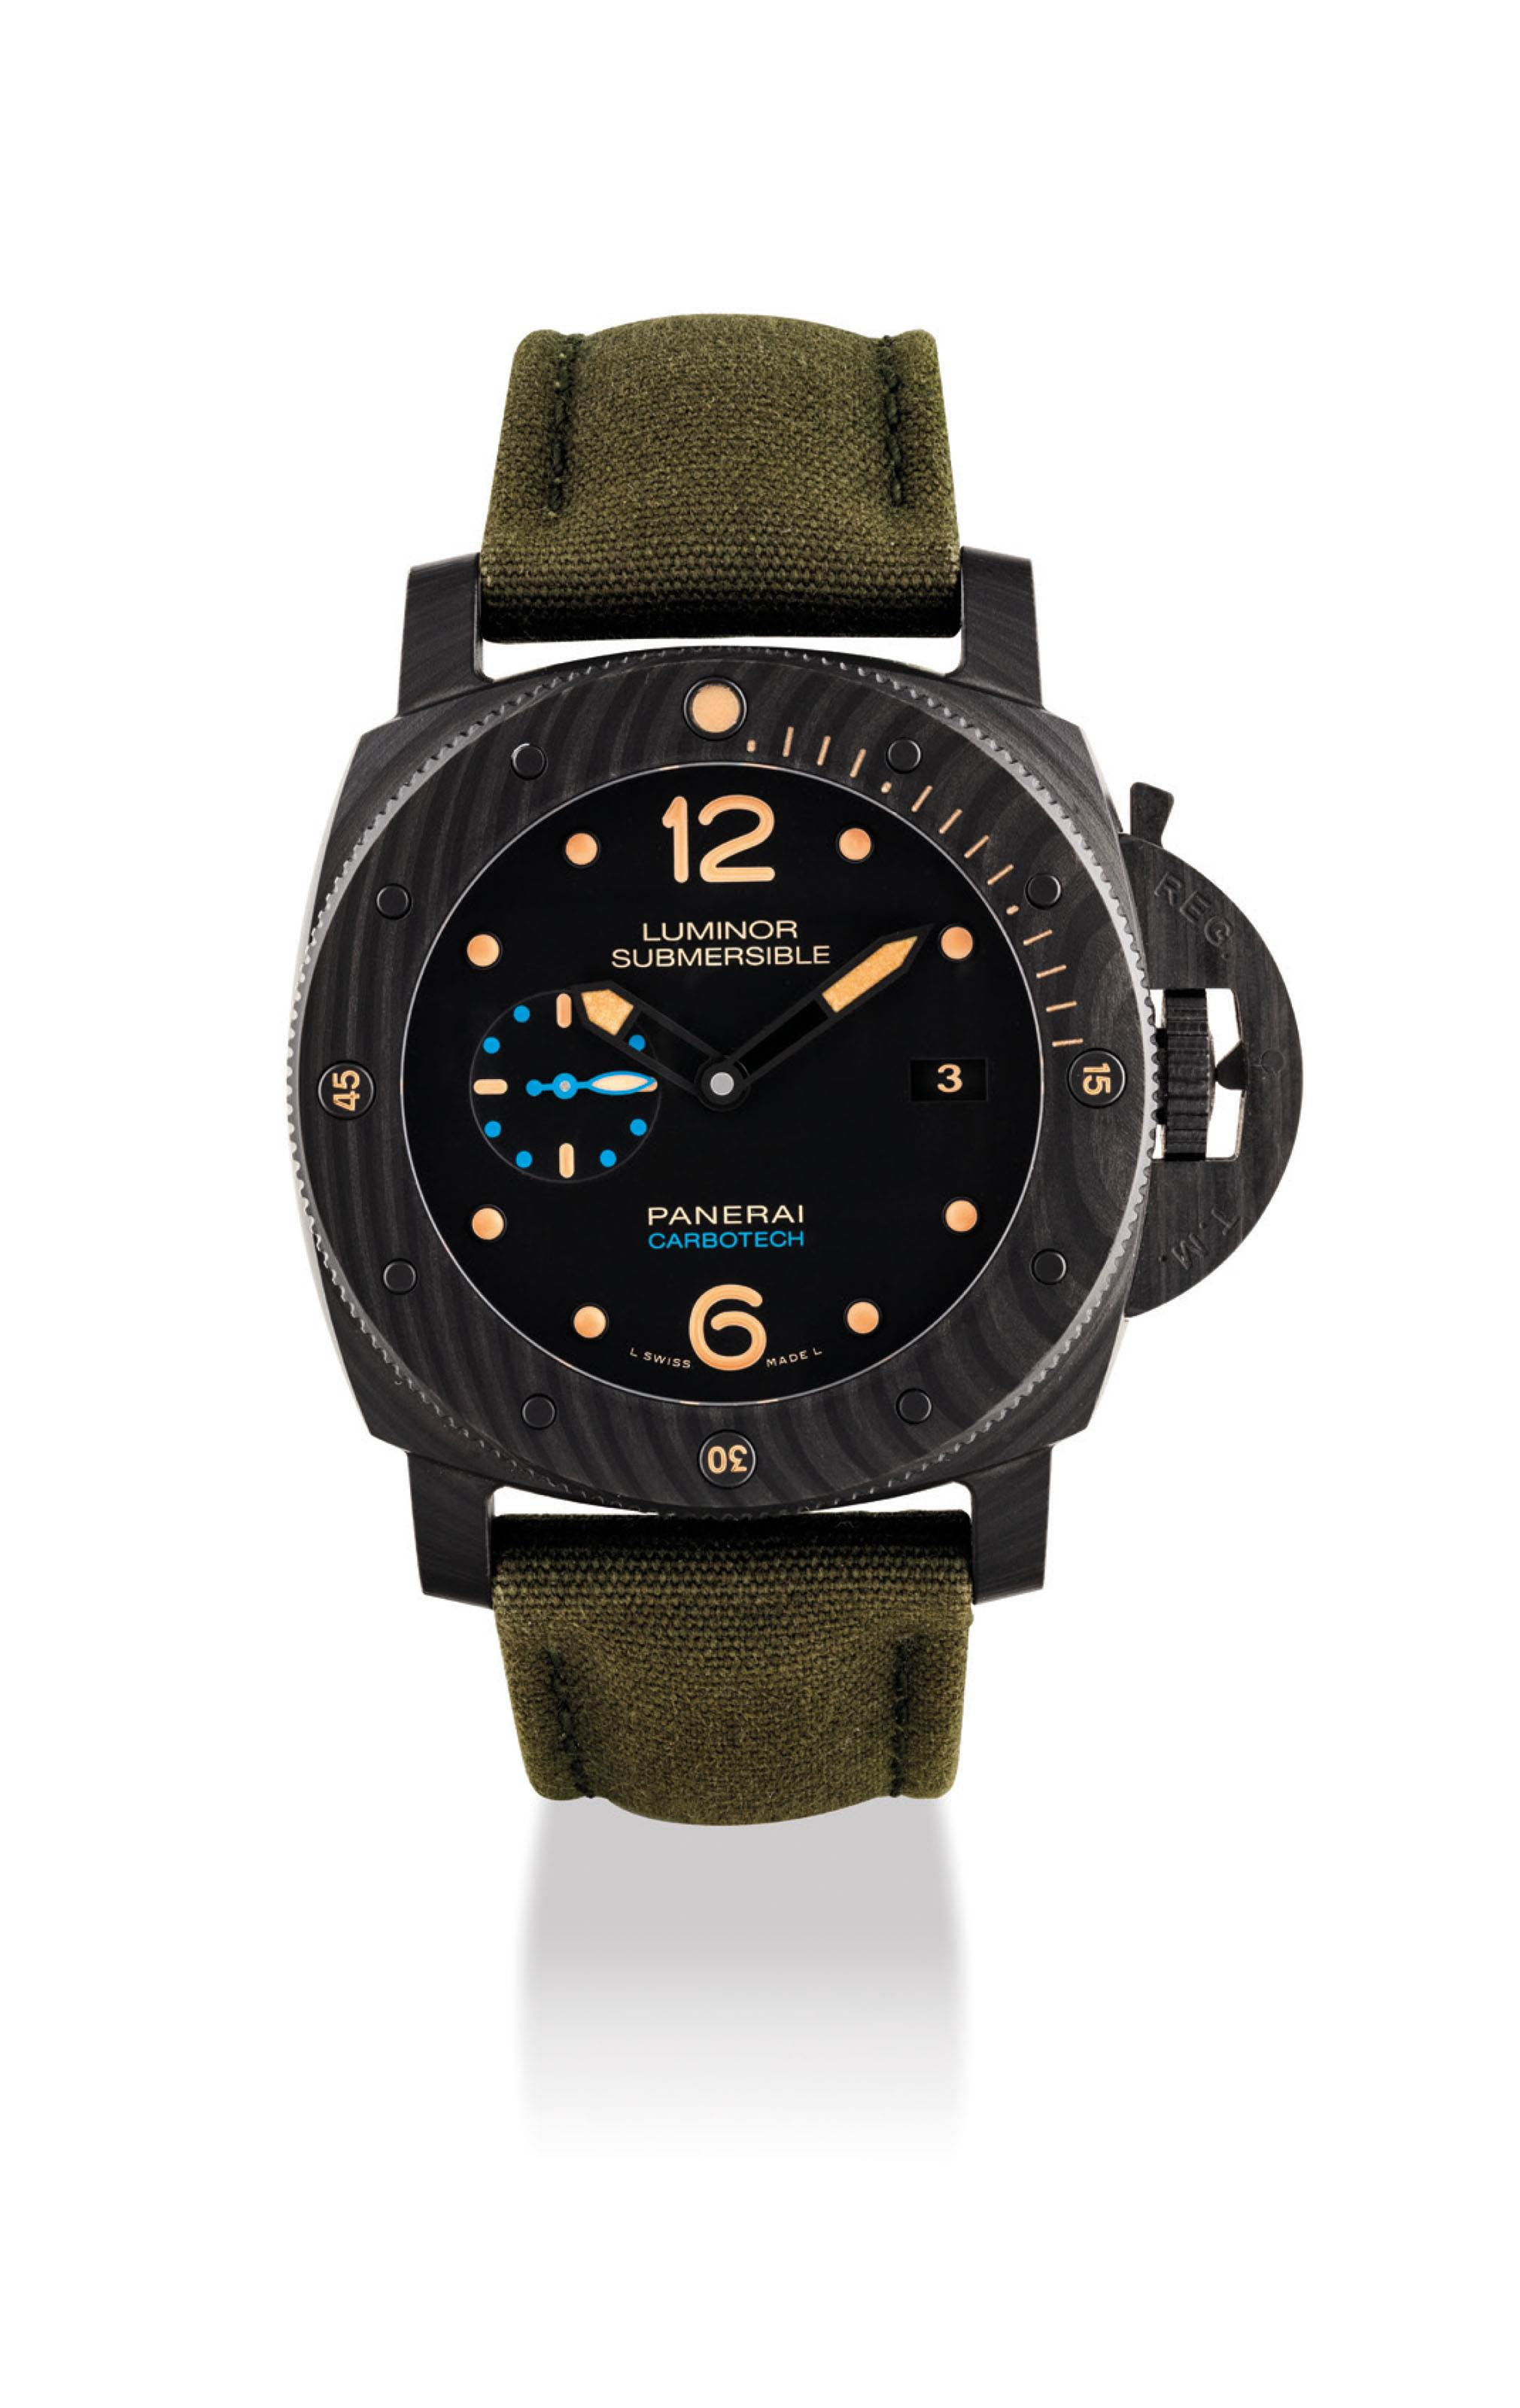 PANERAI. A CARBOTECH CUSHION-SHAPED AUTOMATIC WRISTWATCH WITH DATE